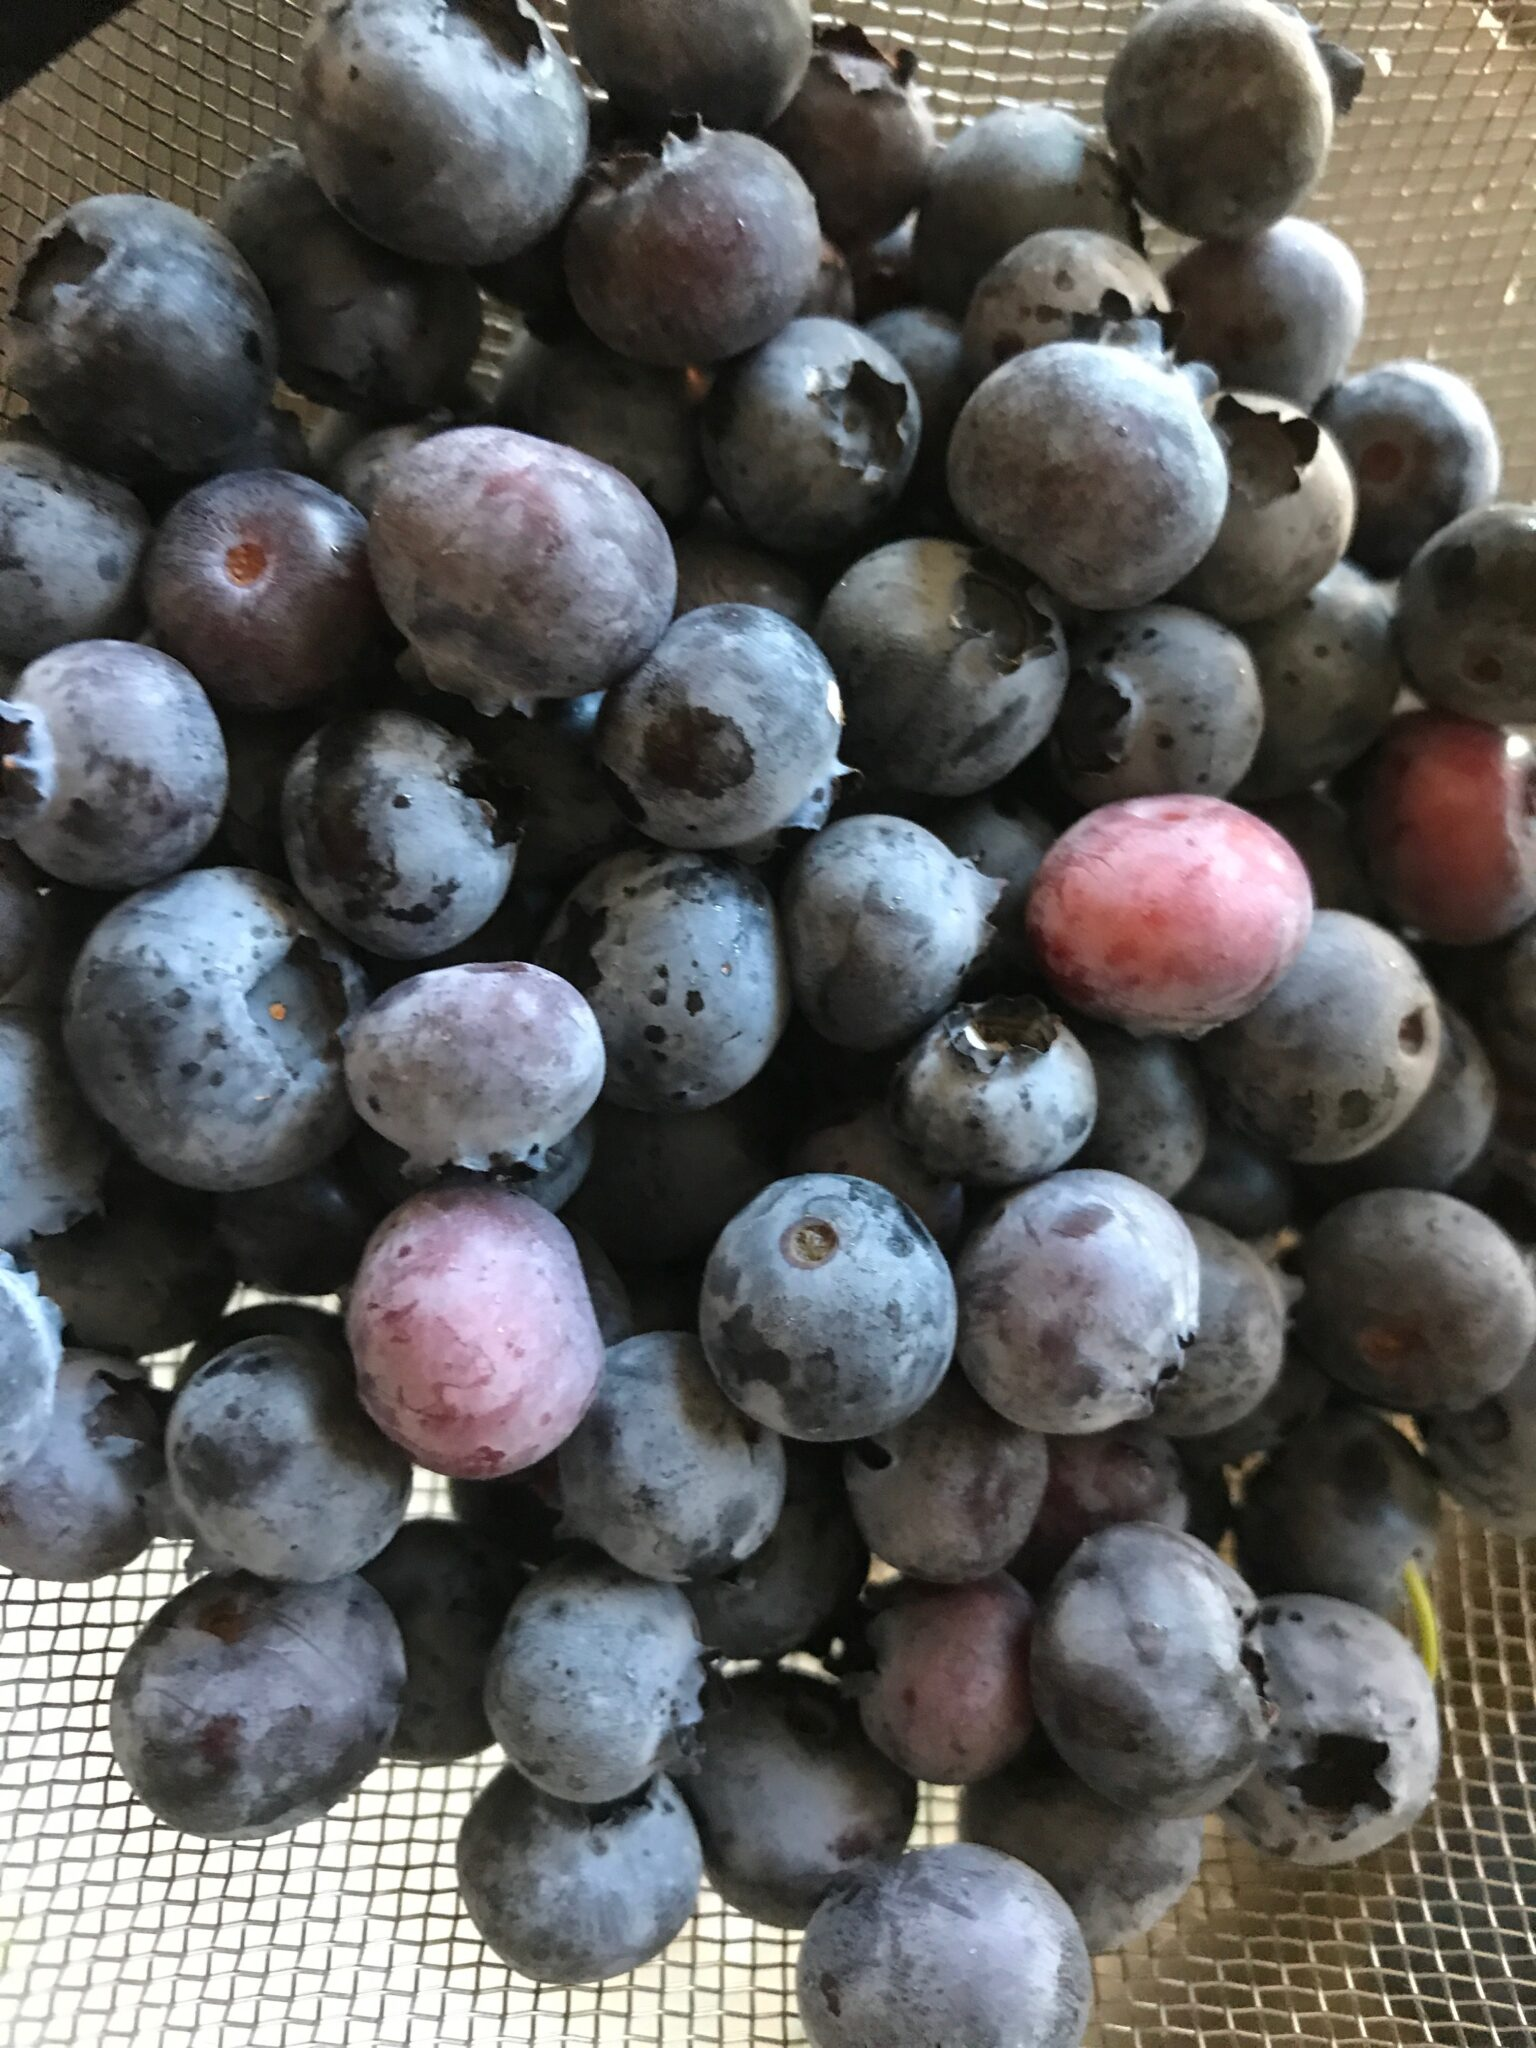 The Berry Bunch, The Berry Bunch – Blueberries